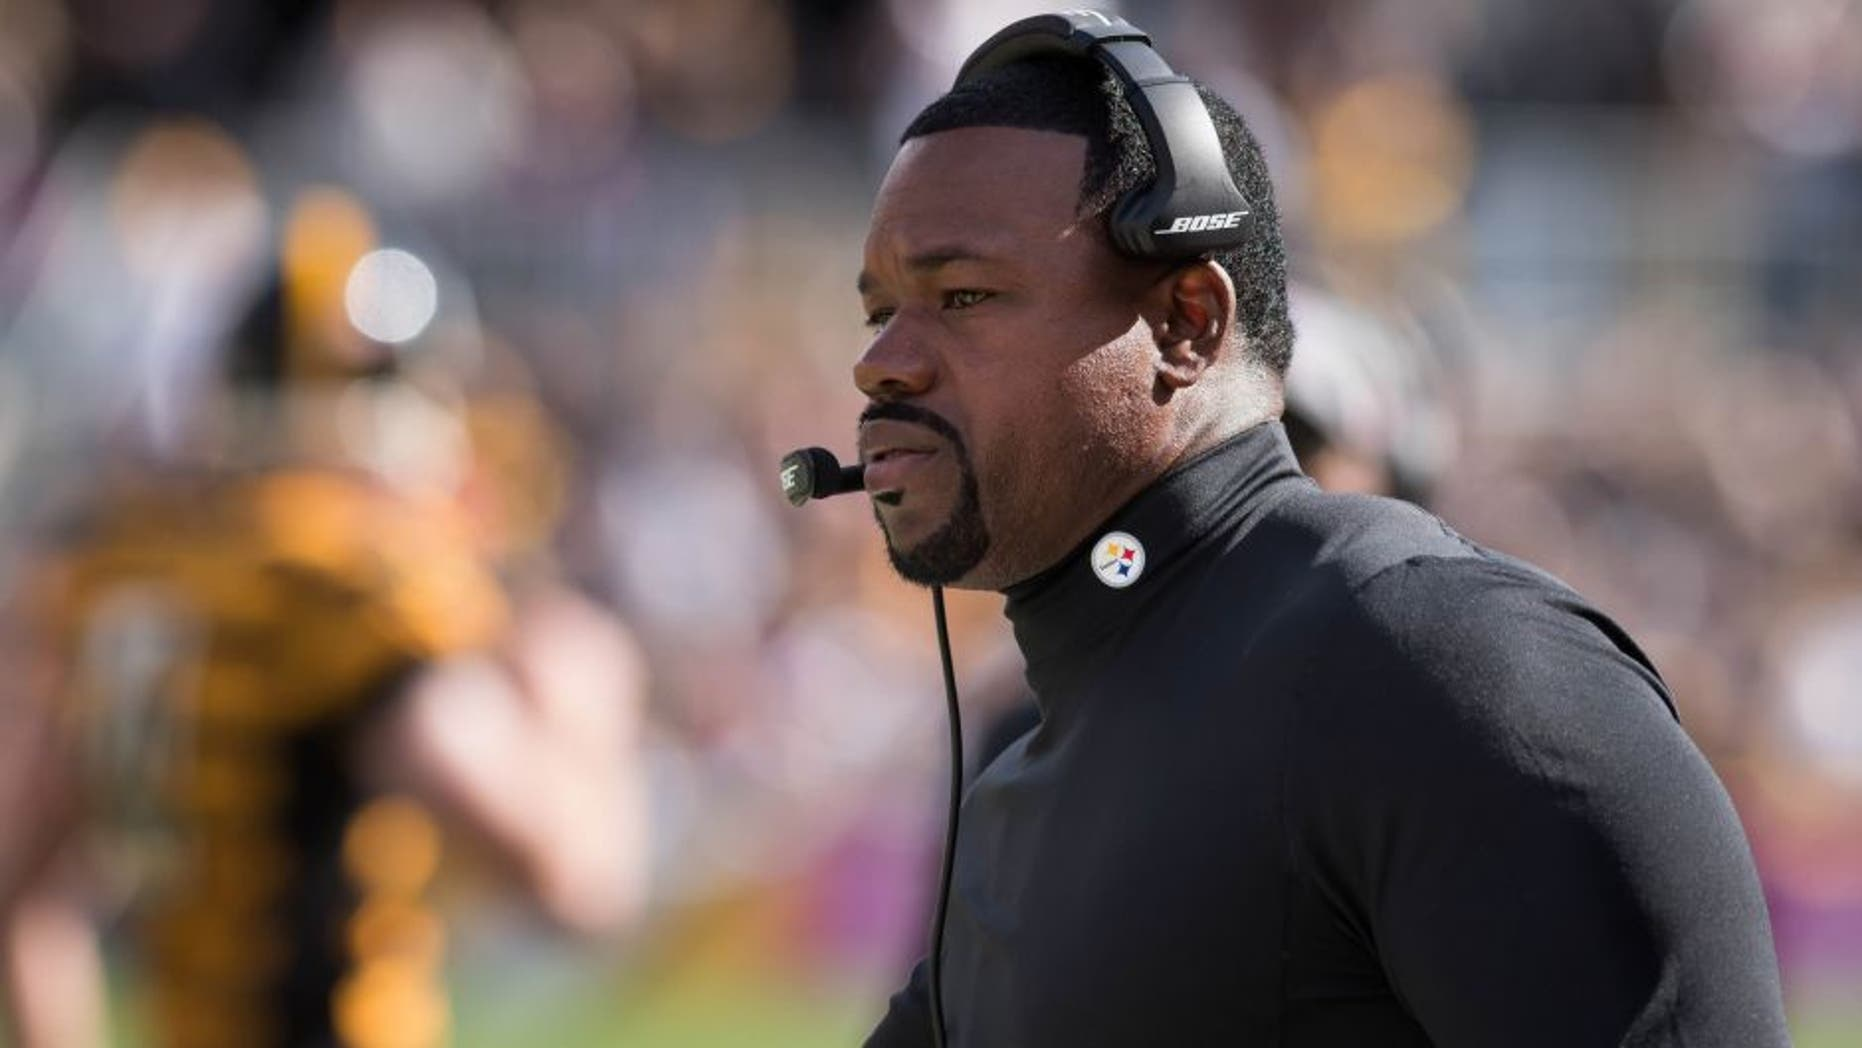 Oct 9, 2016; Pittsburgh, PA, USA; Pittsburgh Steelers linebacker coach Joey Porter on the sideline during the third quarter of a game against the New York Jets at Heinz Field. Pittsburgh won 31-13. Mandatory Credit: Mark Konezny-USA TODAY Sports